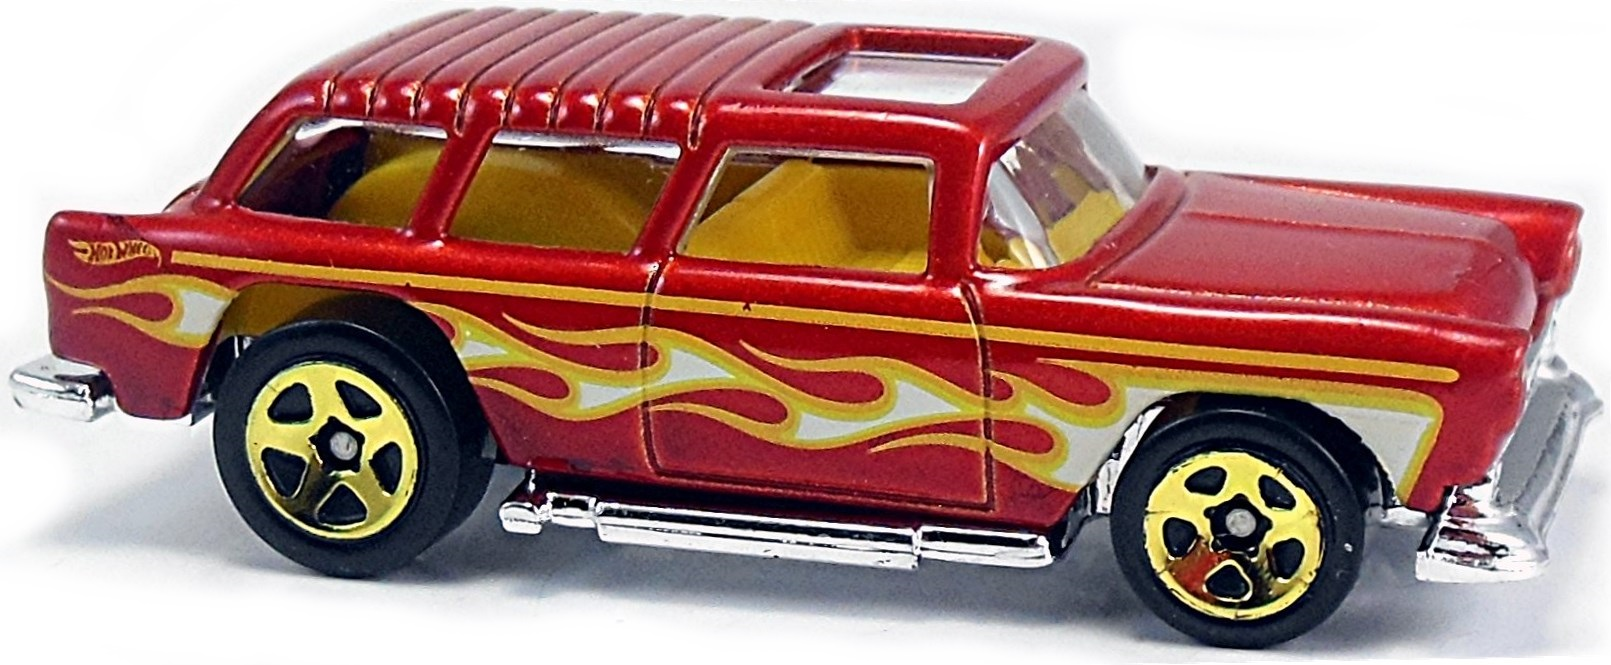 55 Nomad – 70mm – 1991 | Hot Wheels Newsletter